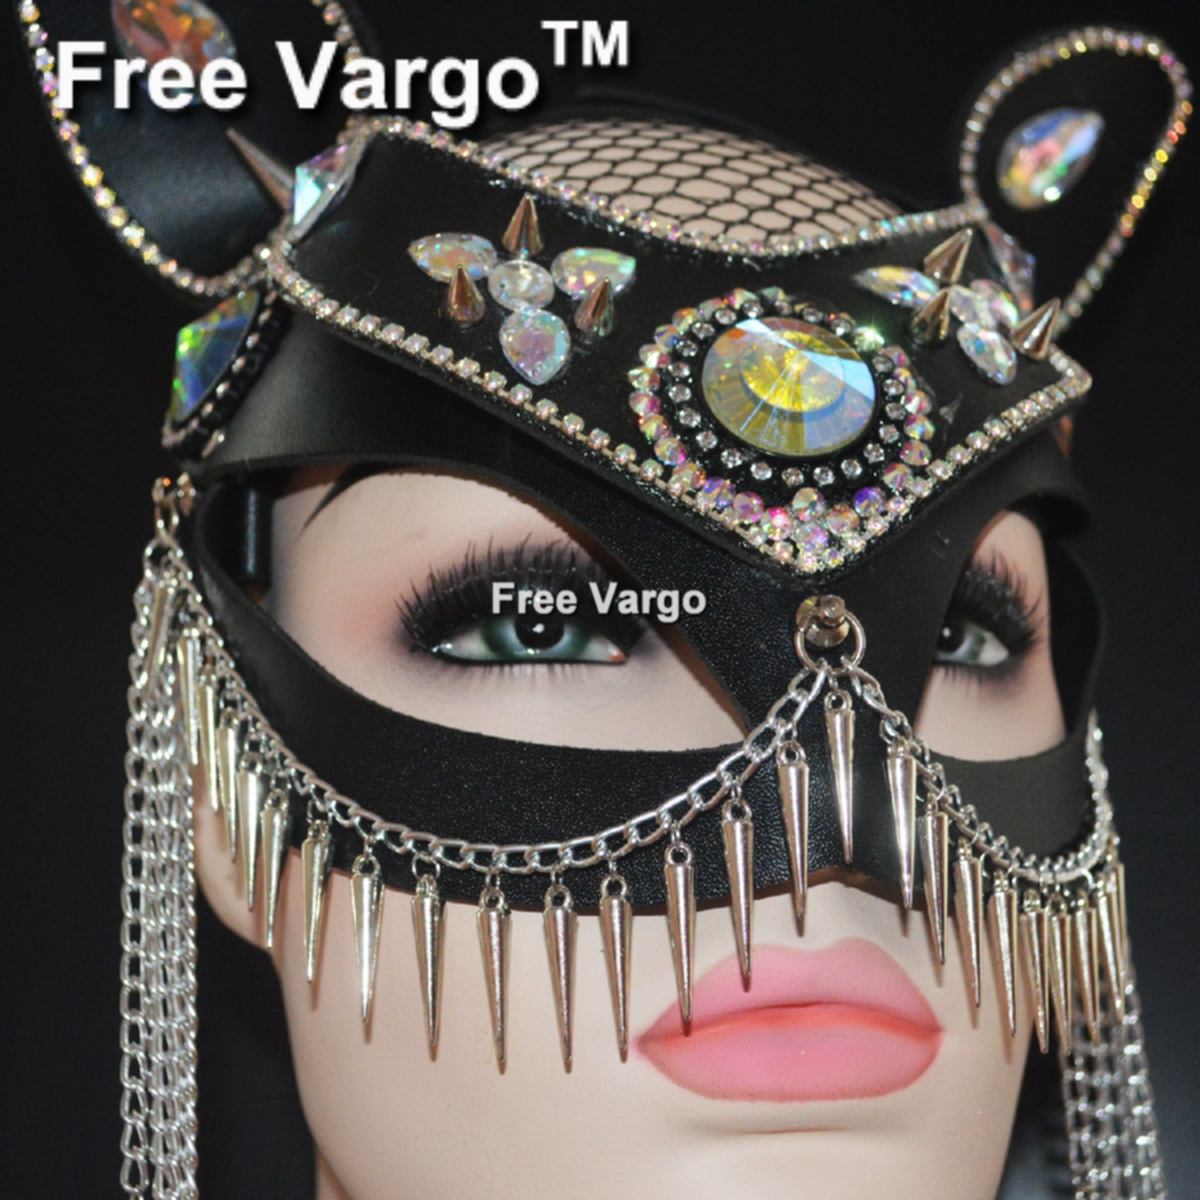 Holographic Burning Man Halloween Masquerade Half Face Cat Mask Catwoman Leather Costume Festival Rave Kitten Mask Outfits Gear